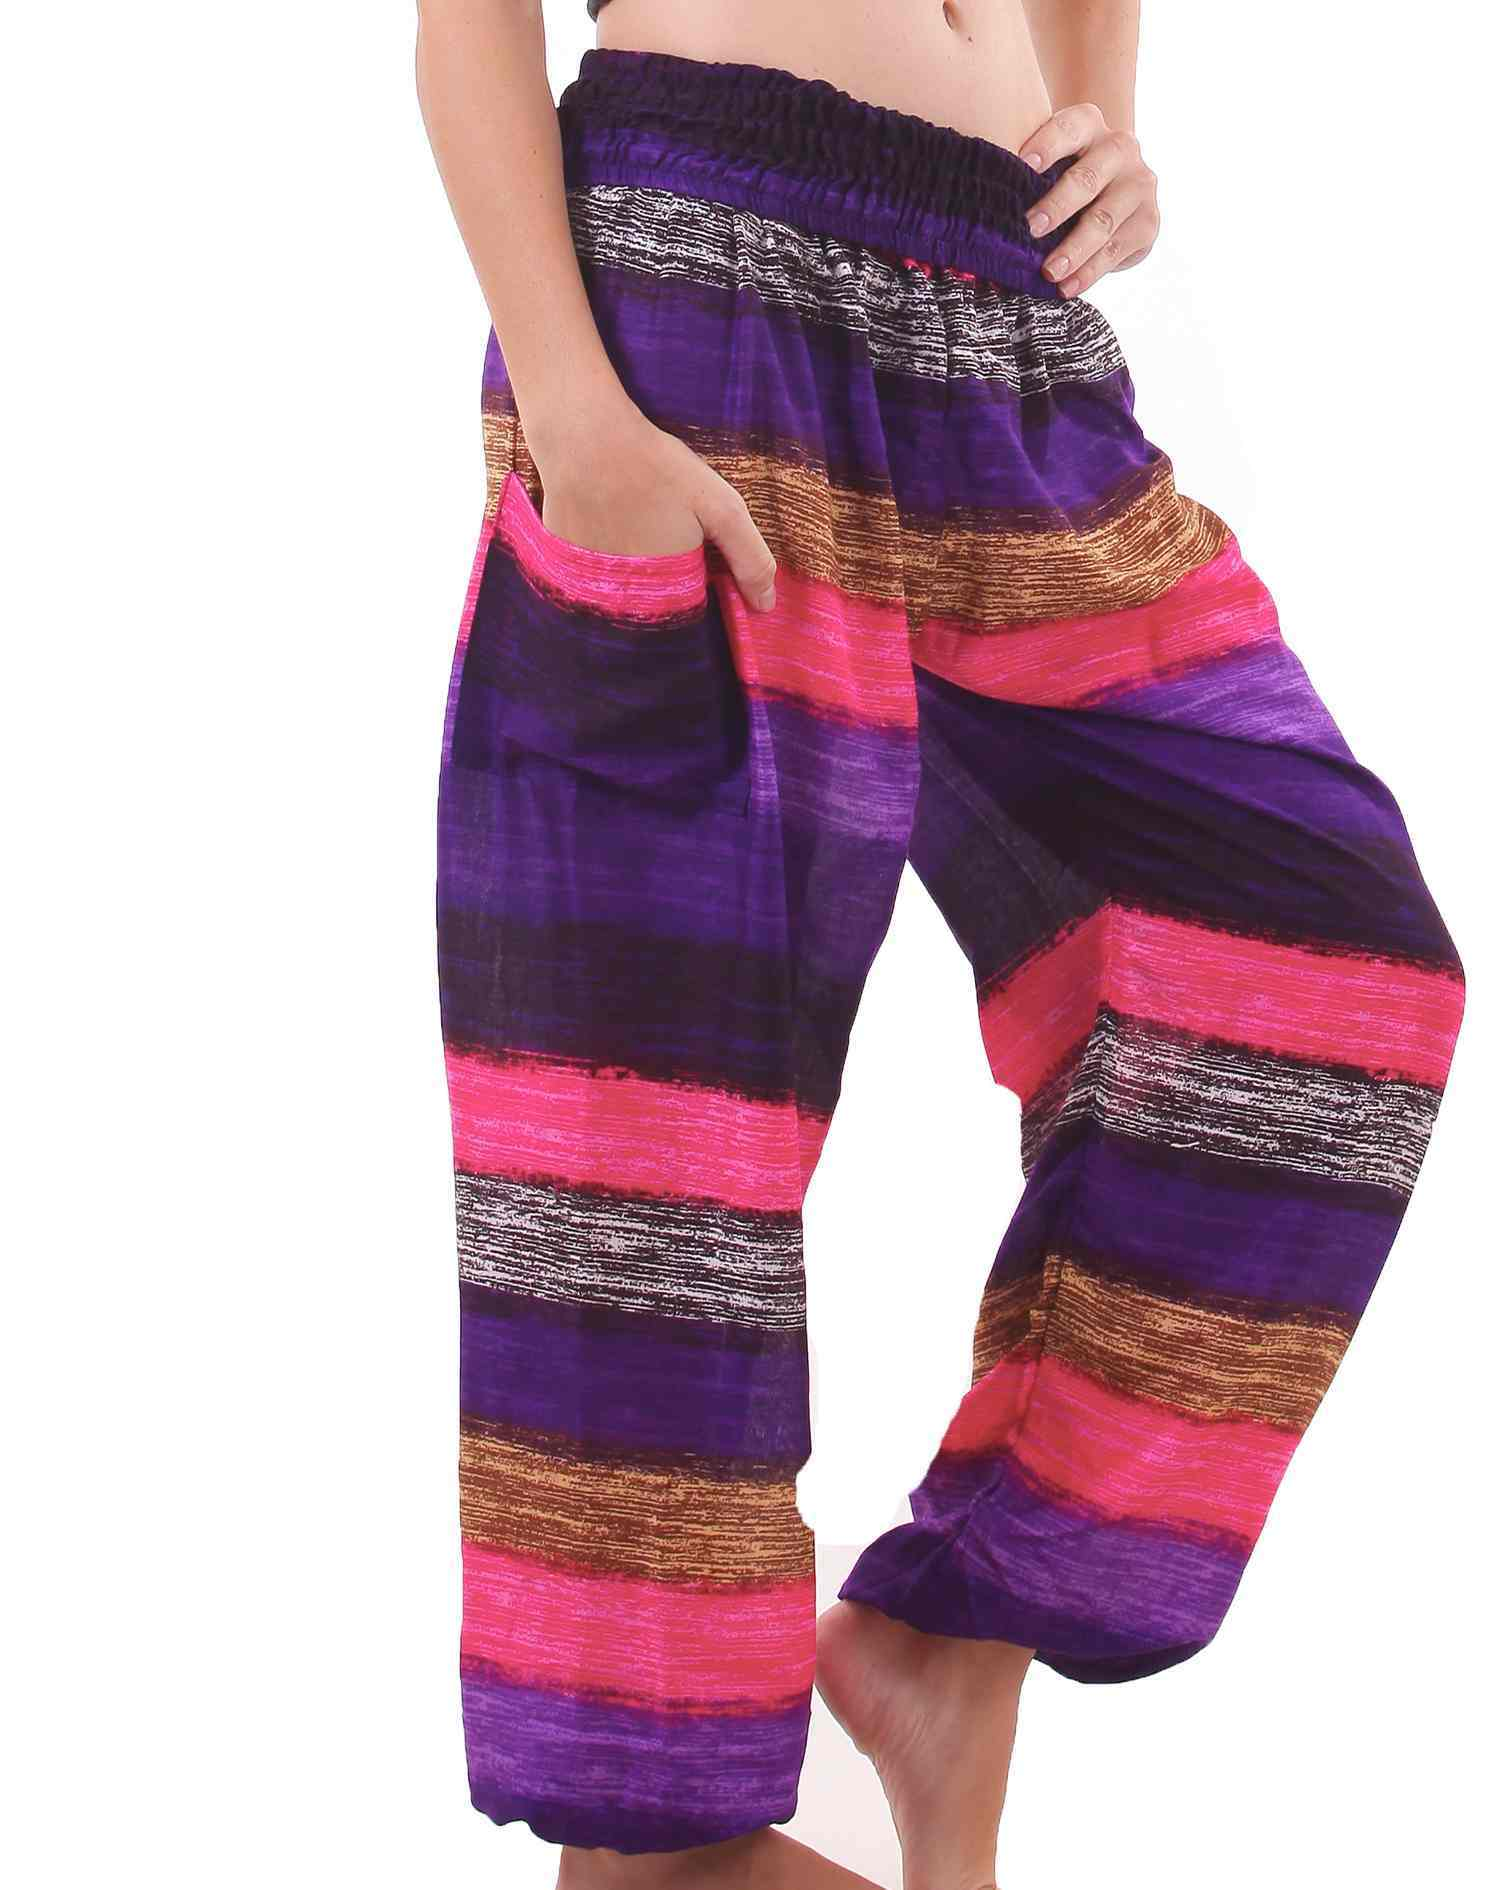 Elements Thai Pants in Spring Colors for Women